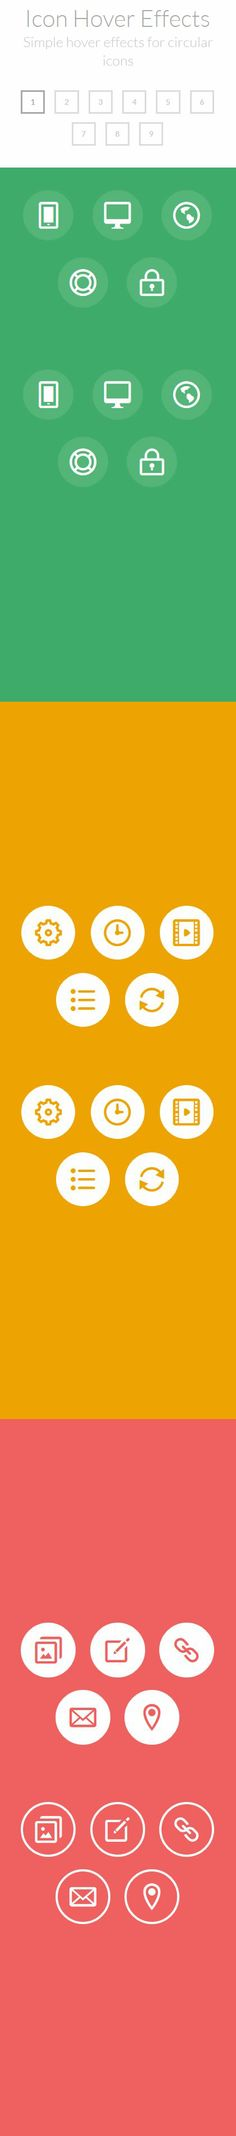 CSS3 Icon Hover Effects http://tympanus.net/Development/IconHoverEffects/